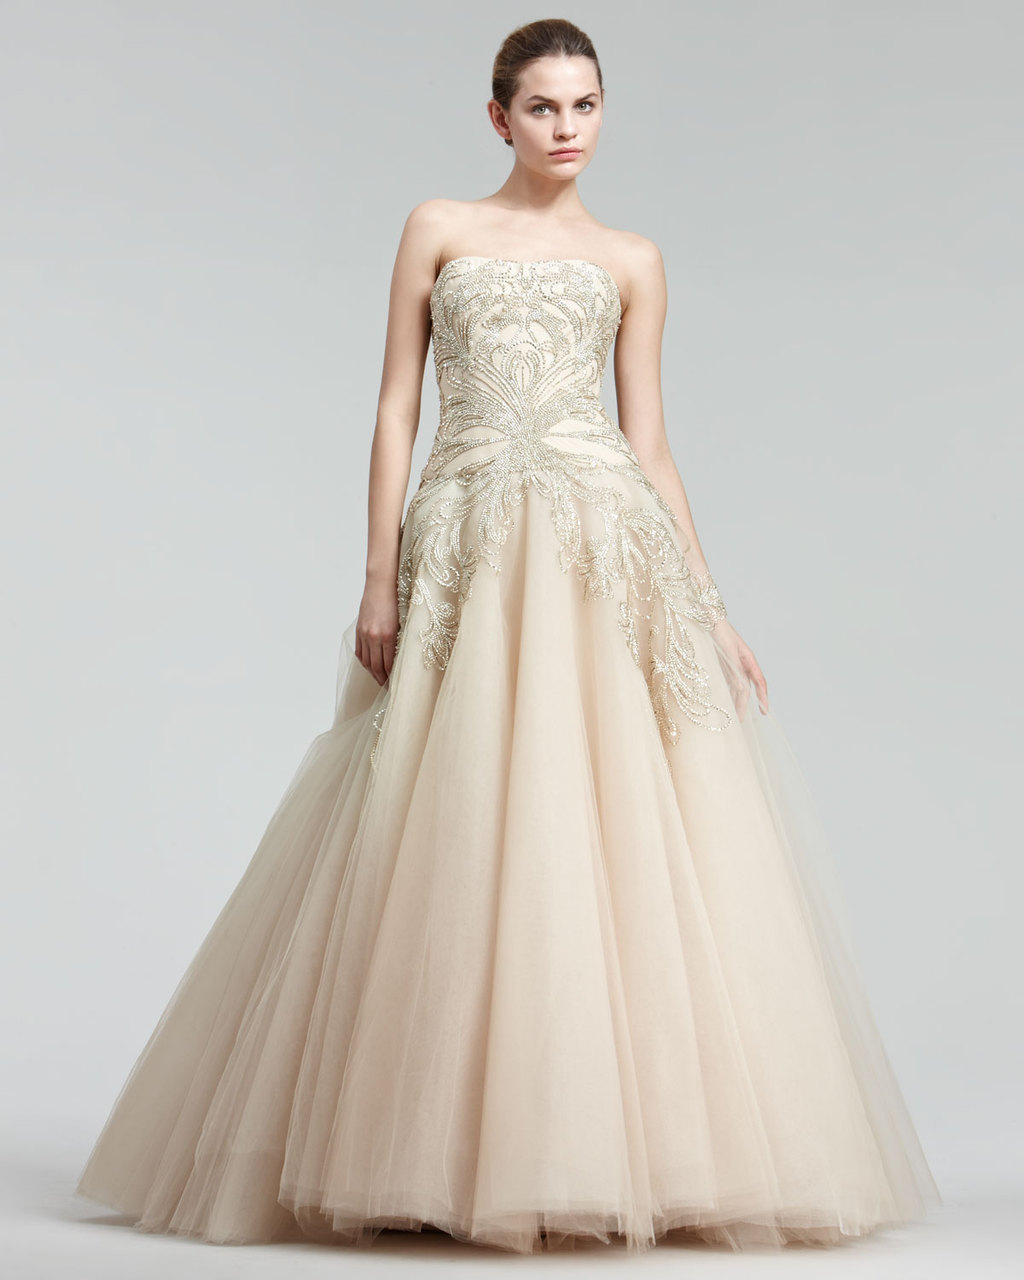 Wedding-splurge-top-10-for-fall-2012-marchesa-cream-beaded-ball-gown.full